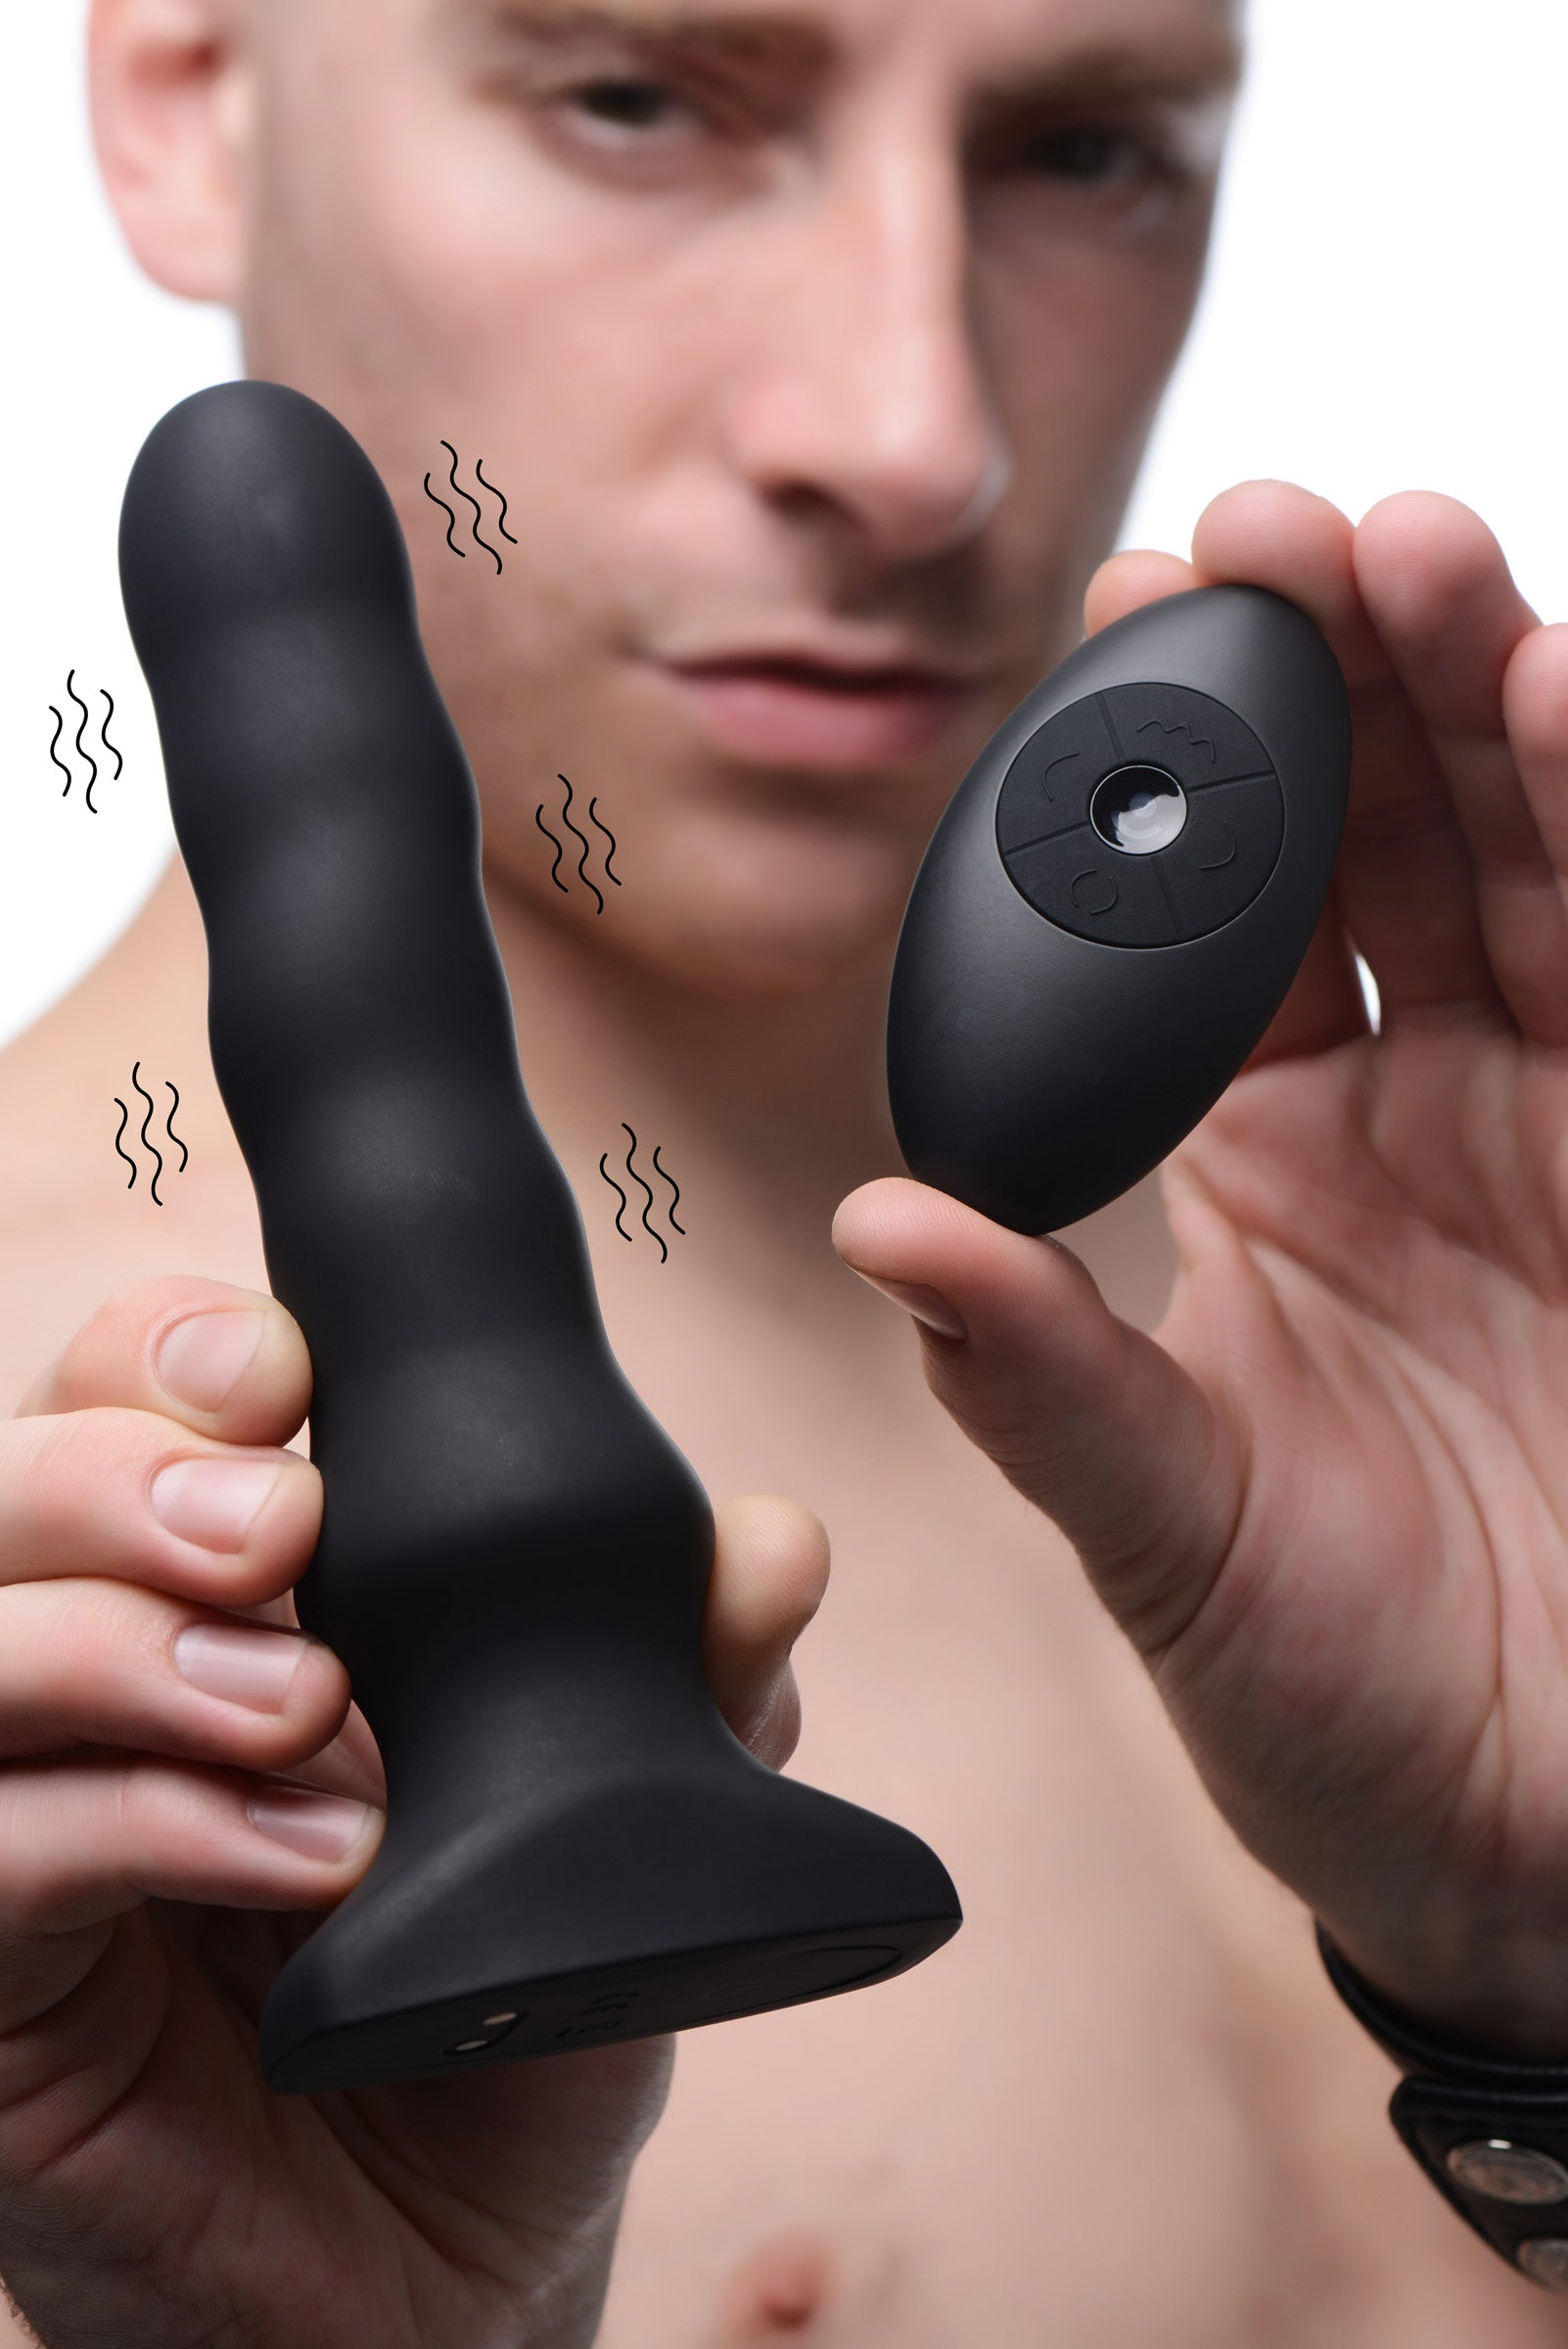 Silicone Vibrating and Squirming Plug with Remote Control